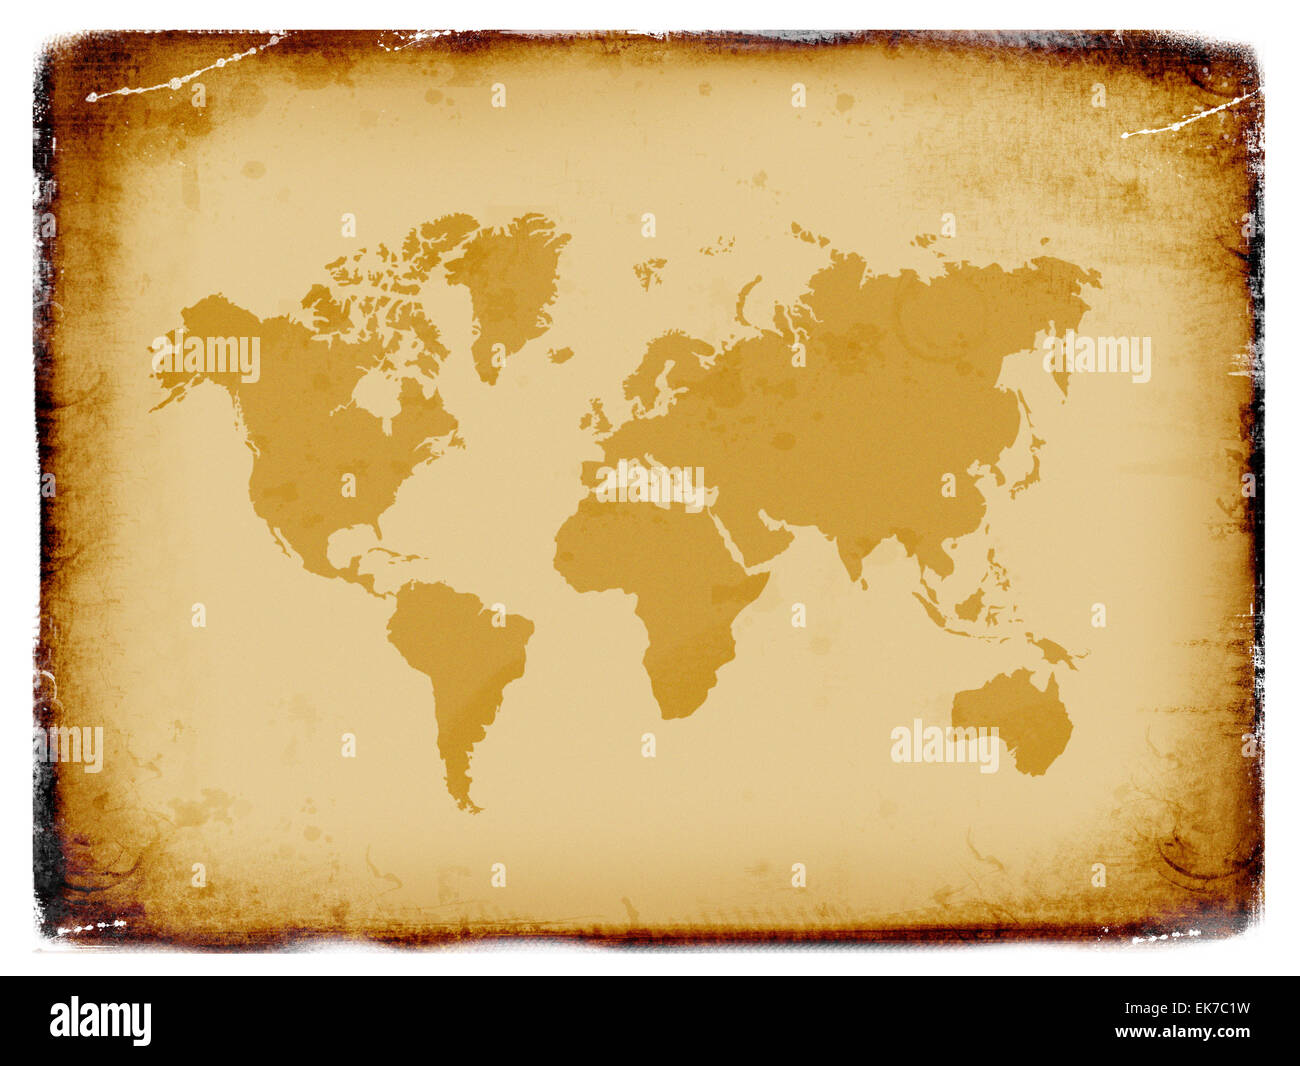 Ancient world map grunge background stock photo royalty free image ancient world map grunge background gumiabroncs Gallery